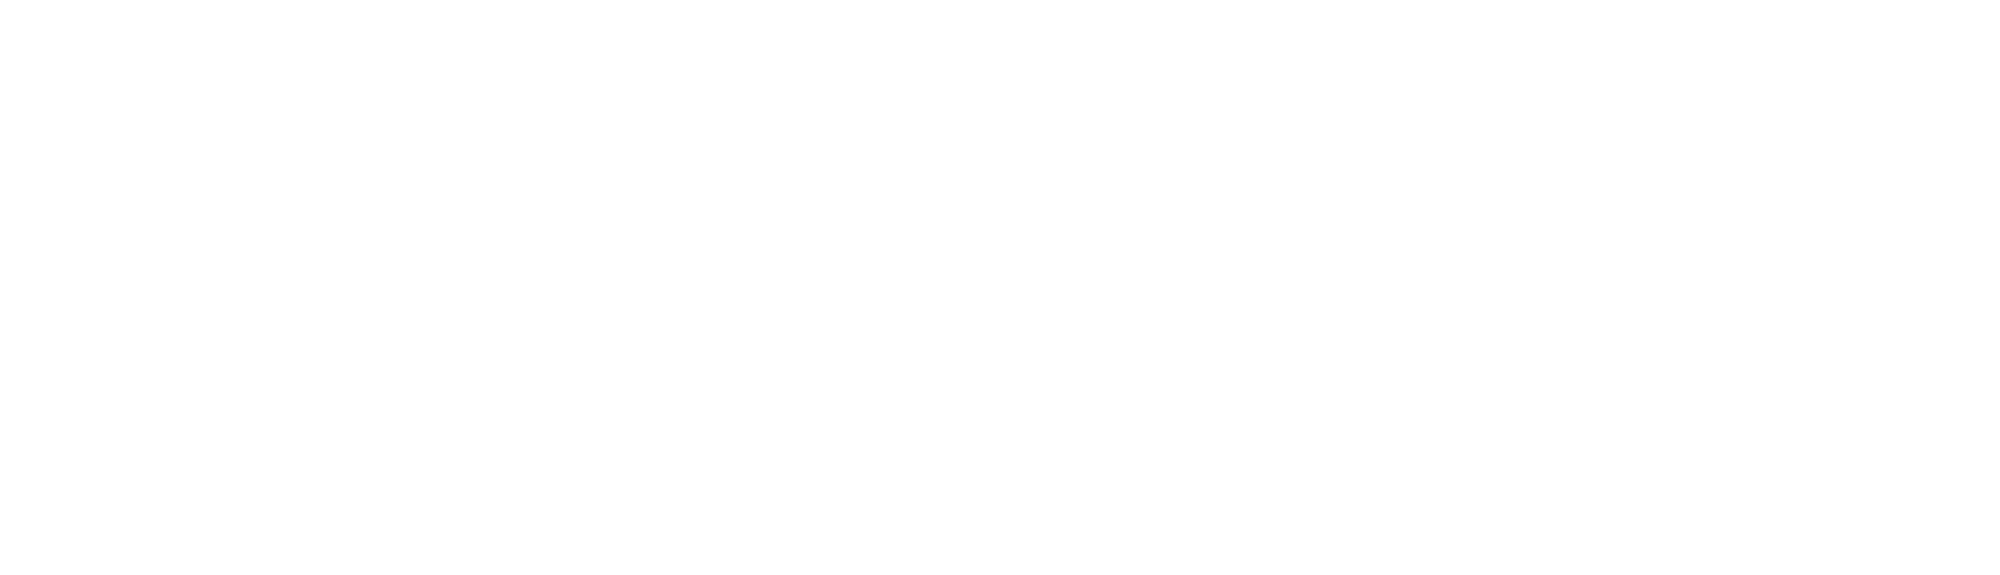 Creative Quest.co